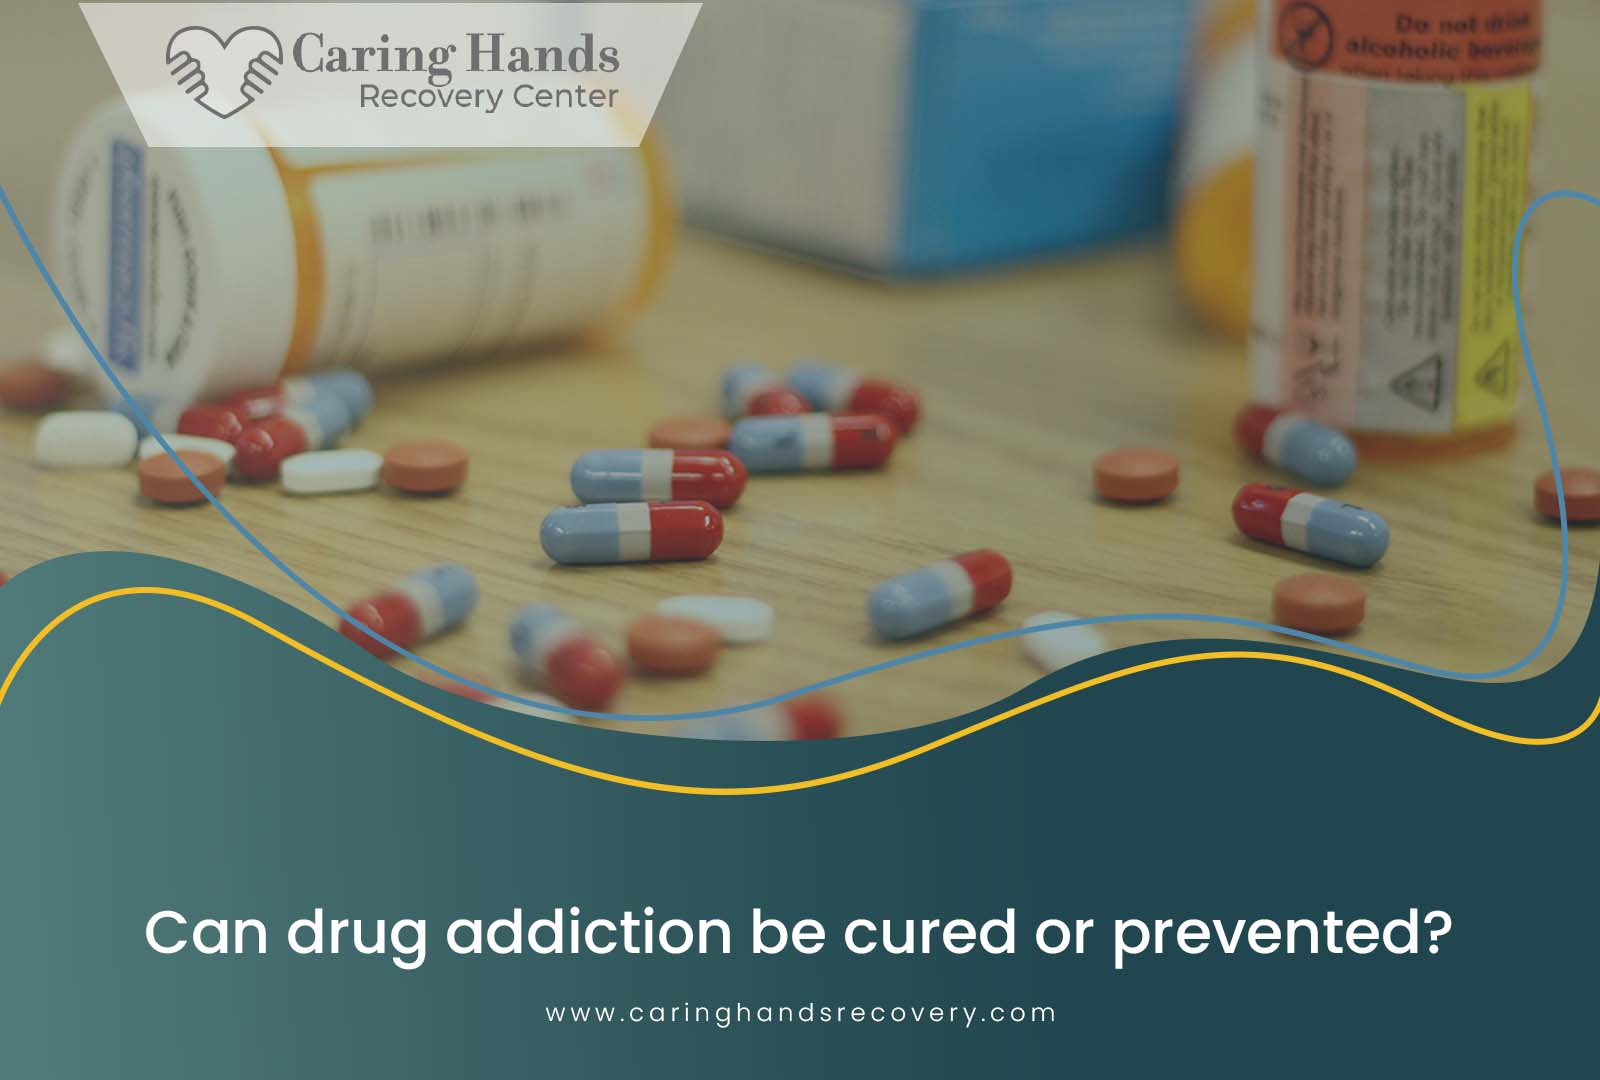 Can drug addiction be cured or prevented